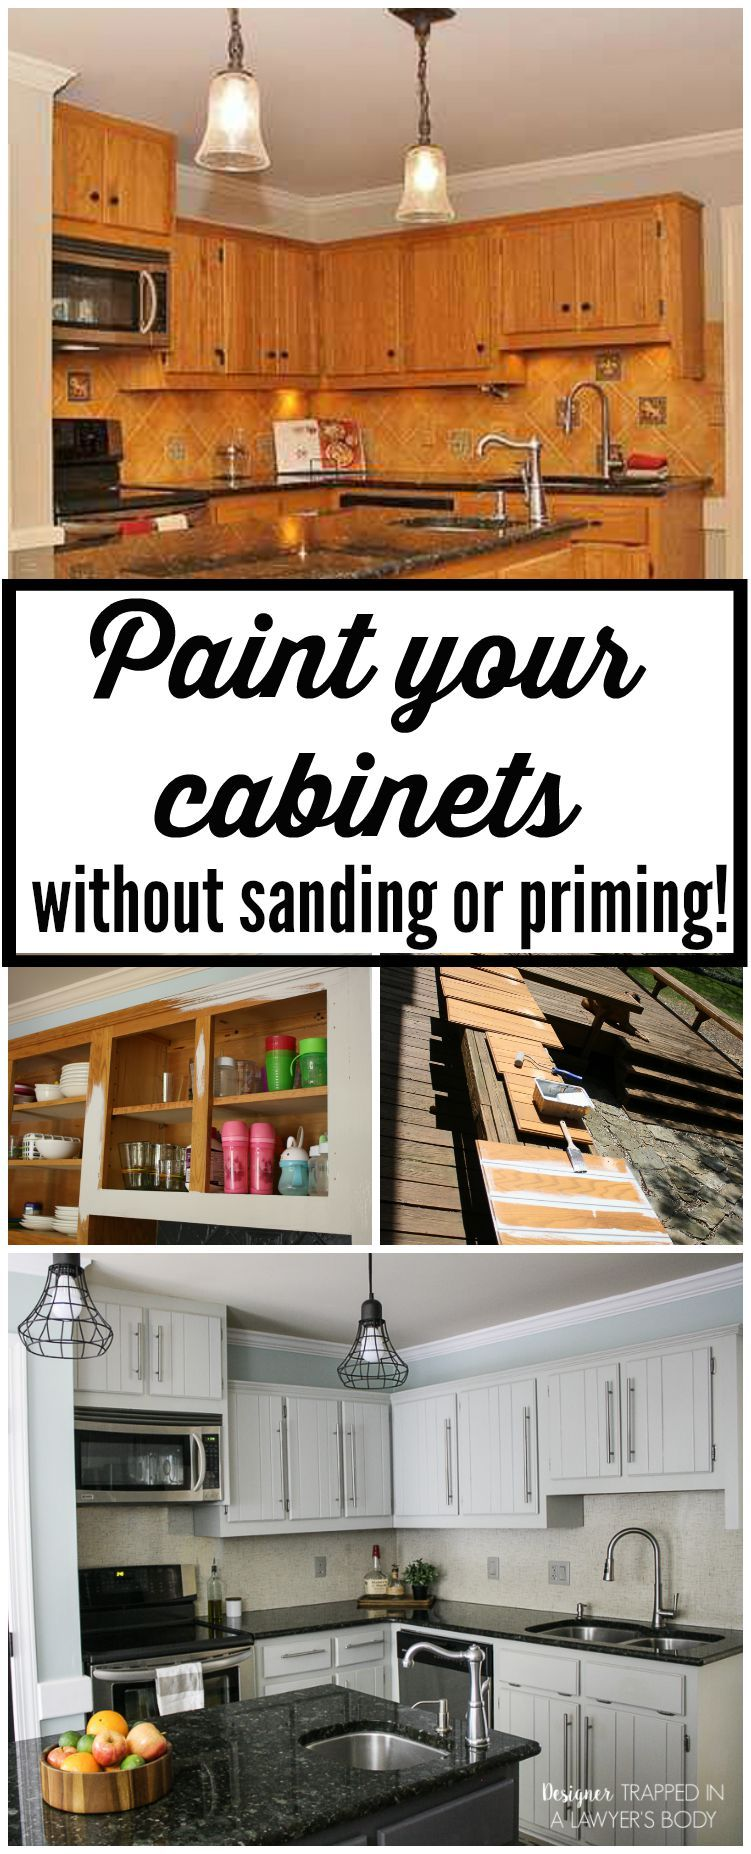 How To Paint Kitchen Cabinets Without Sanding Or Priming Step By Step With Images Kitchen Redo Kitchen Renovation